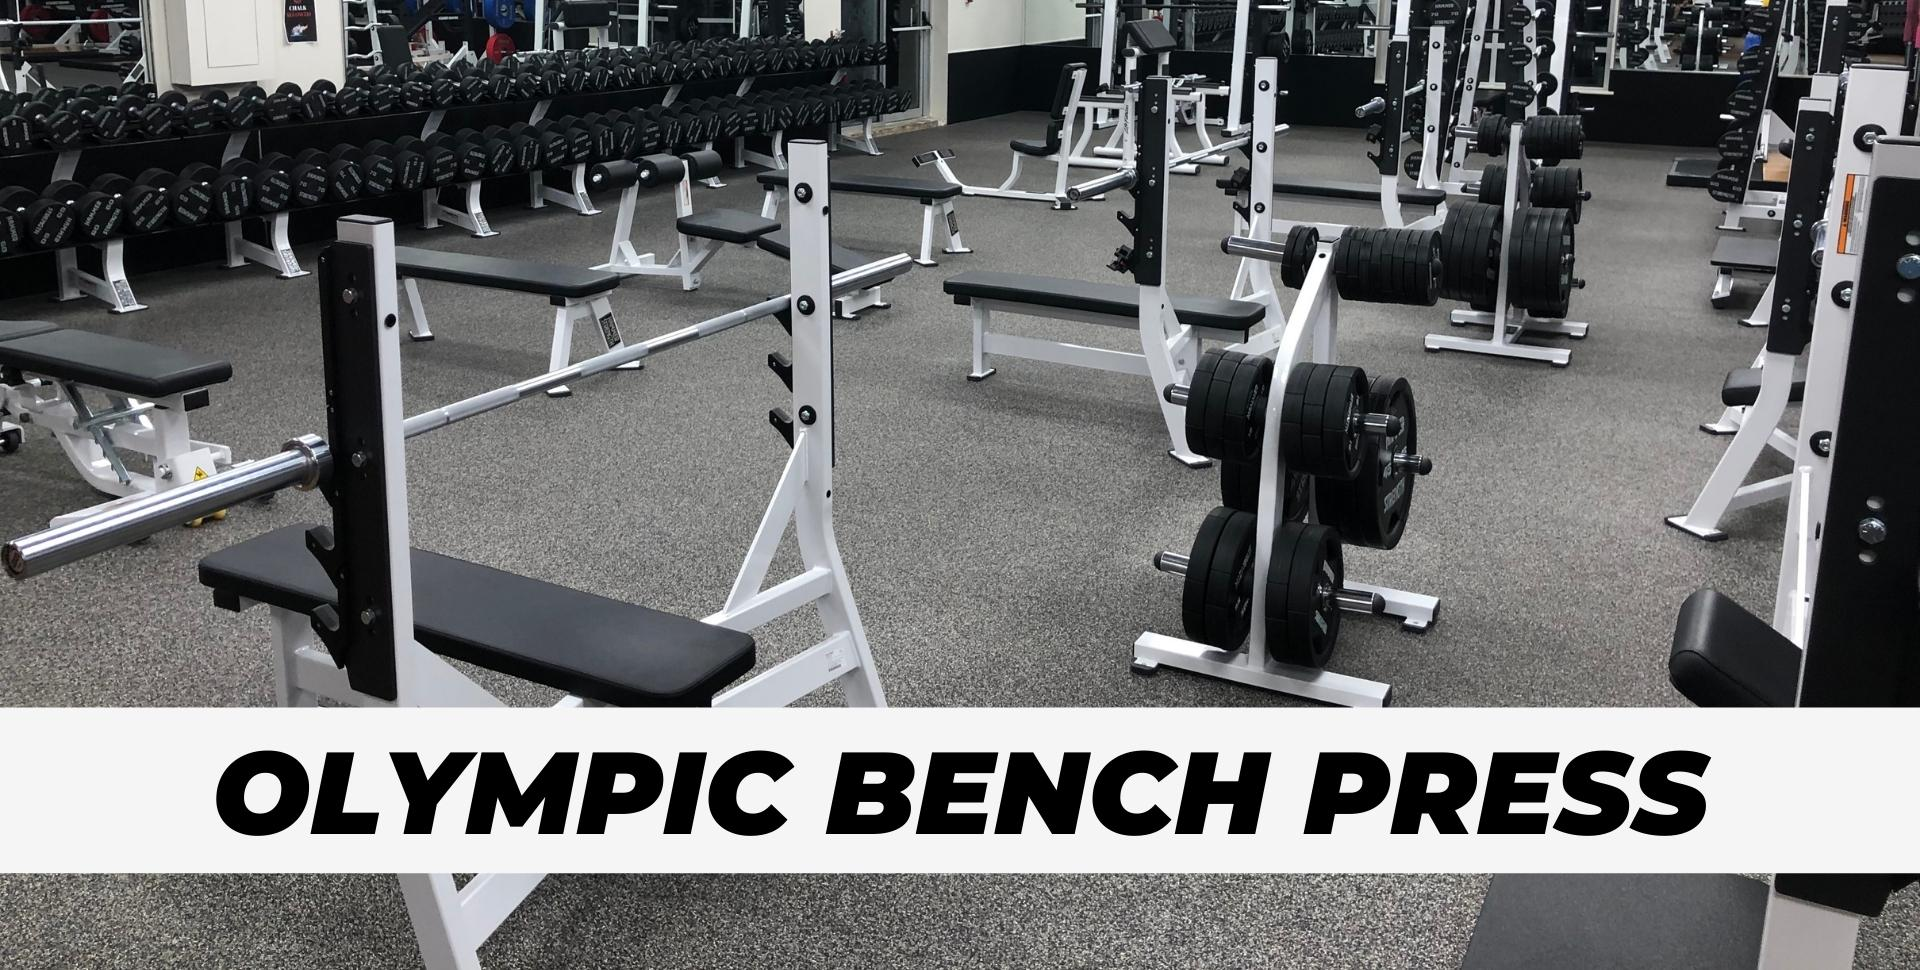 Olympic Bench Press stations at gym for portfolio pic